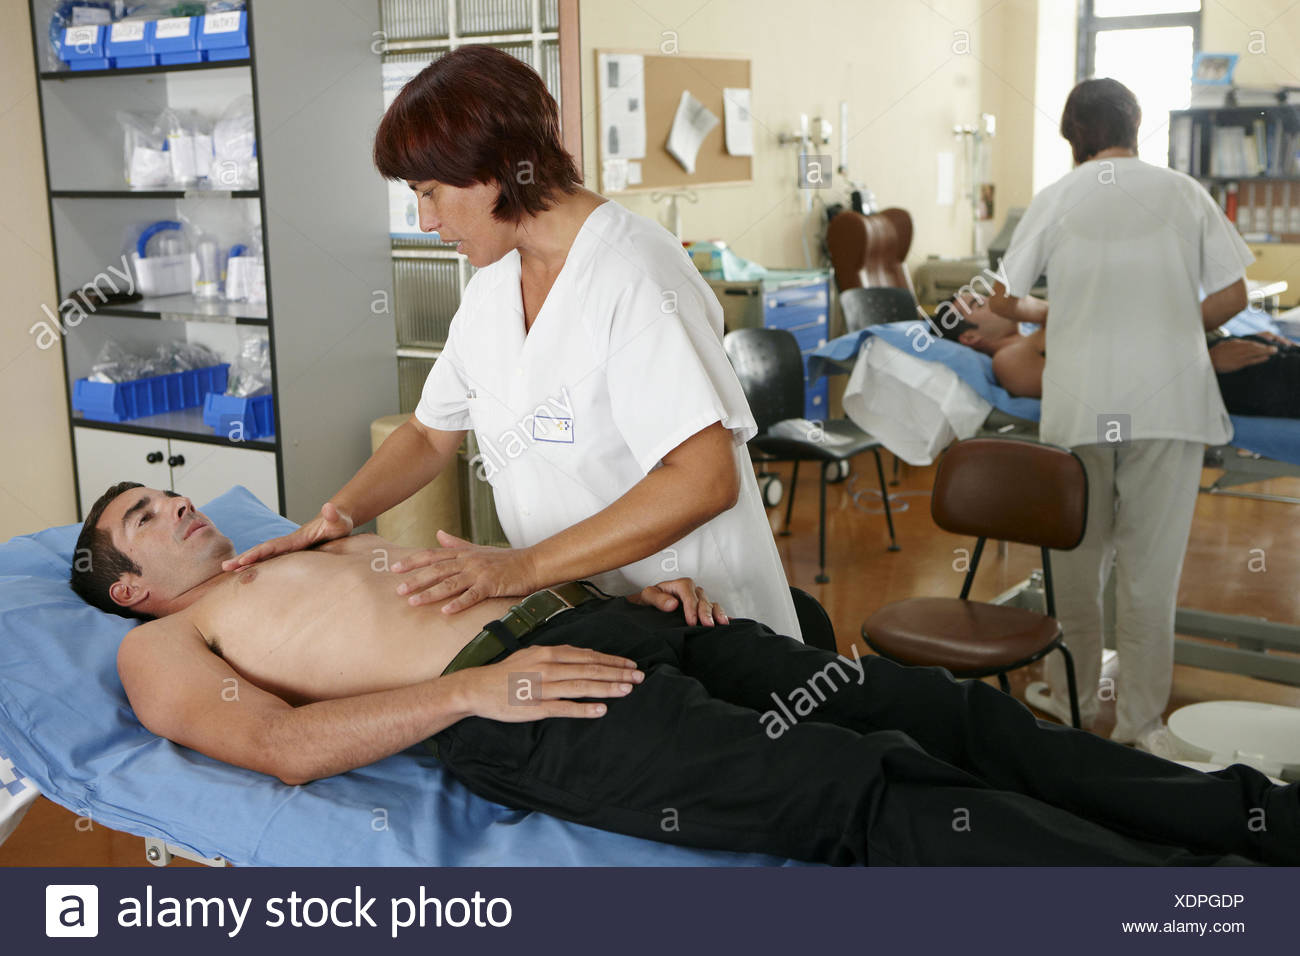 Occupational therapy, physiotherapy, mechanical ventilation on diaphragm, thoracic vibration maneuvers. Hospital Universitario - Stock Image